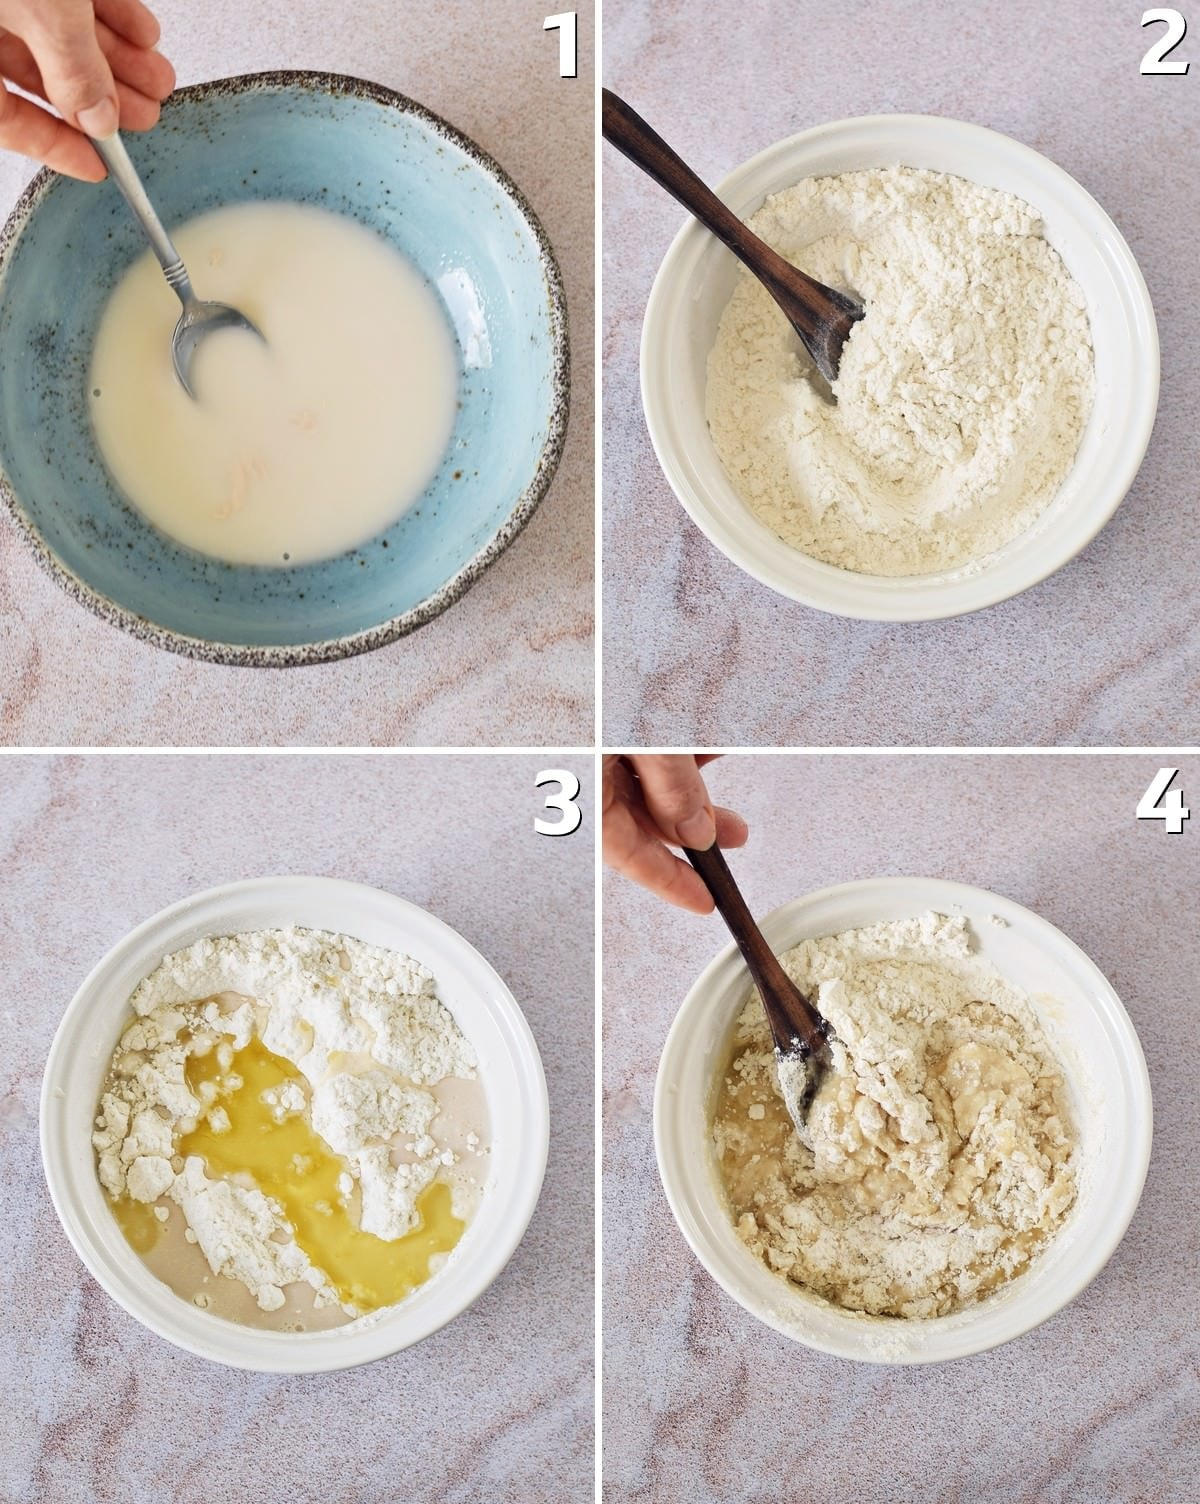 4 step-by-step photos how to make yeast dough